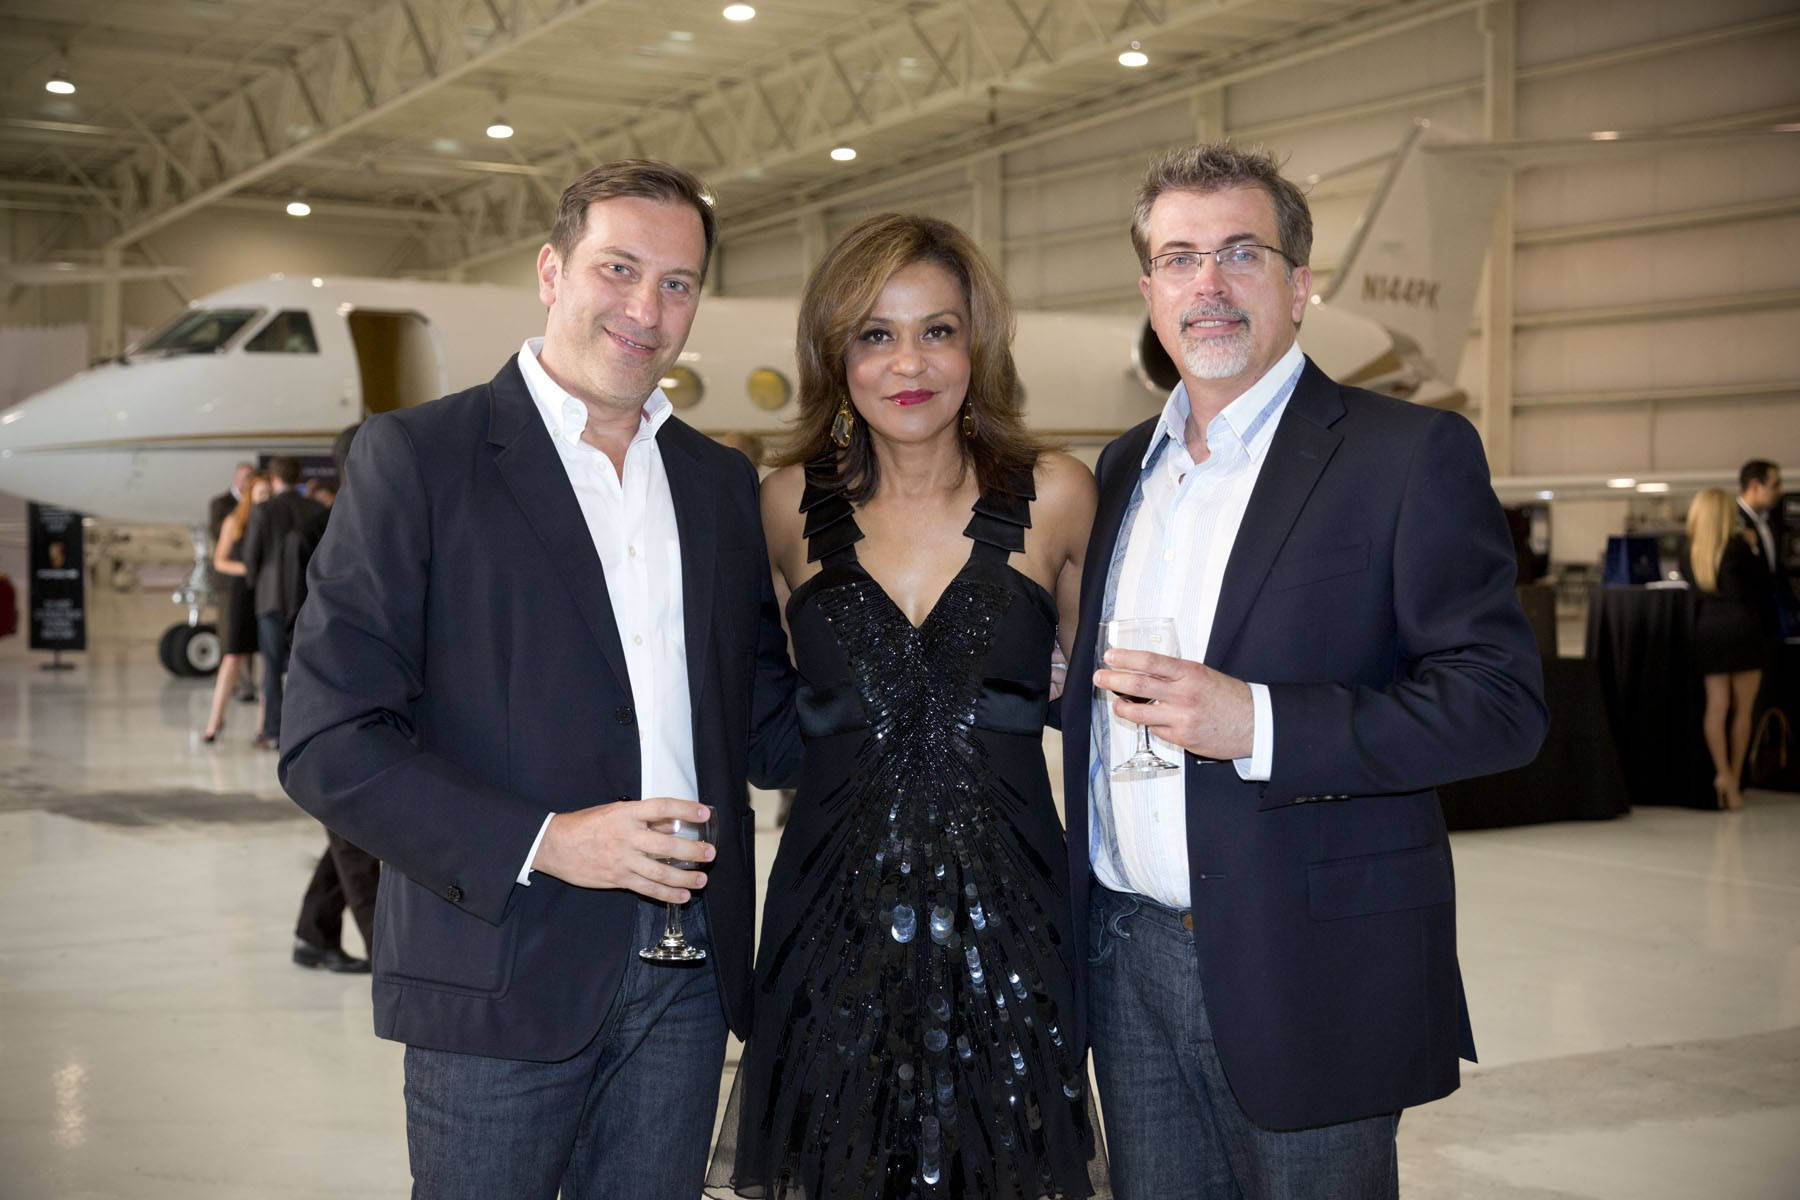 Elite Aviation: Passport to Luxury Event: Renato Rotondaro, Chri